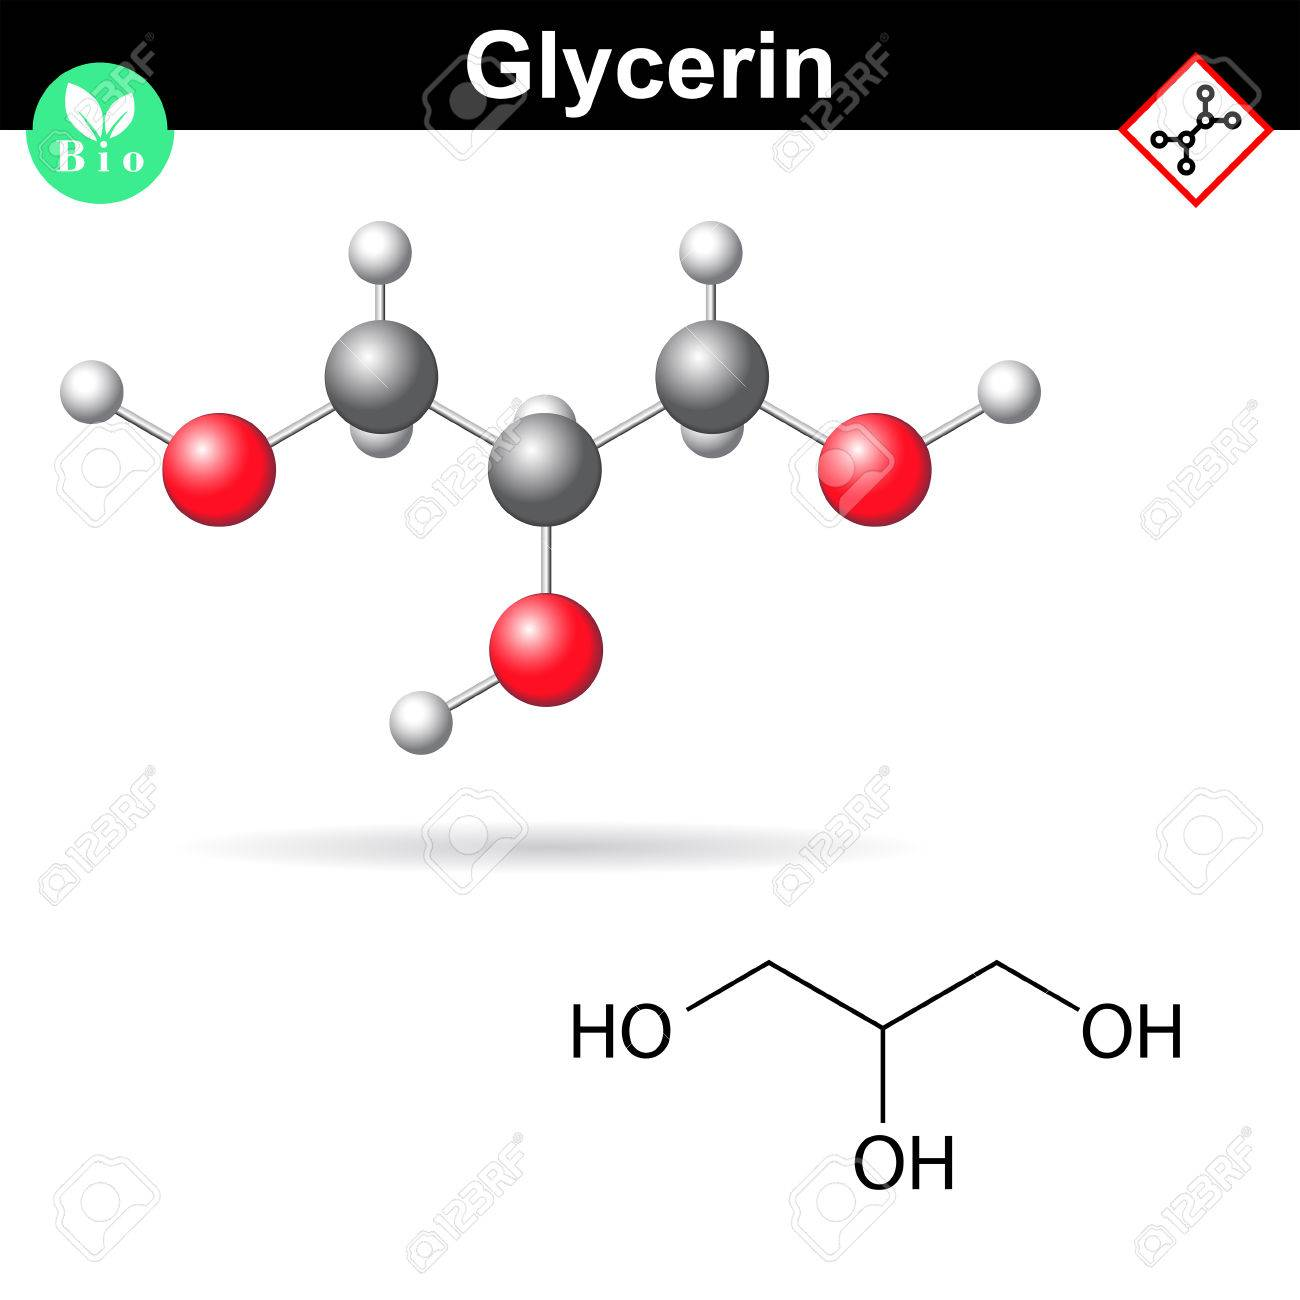 Glycerol chemical formula and model, sugar alcohol structure, 2d and 3d vector illustration, isolated on white background - 64180821